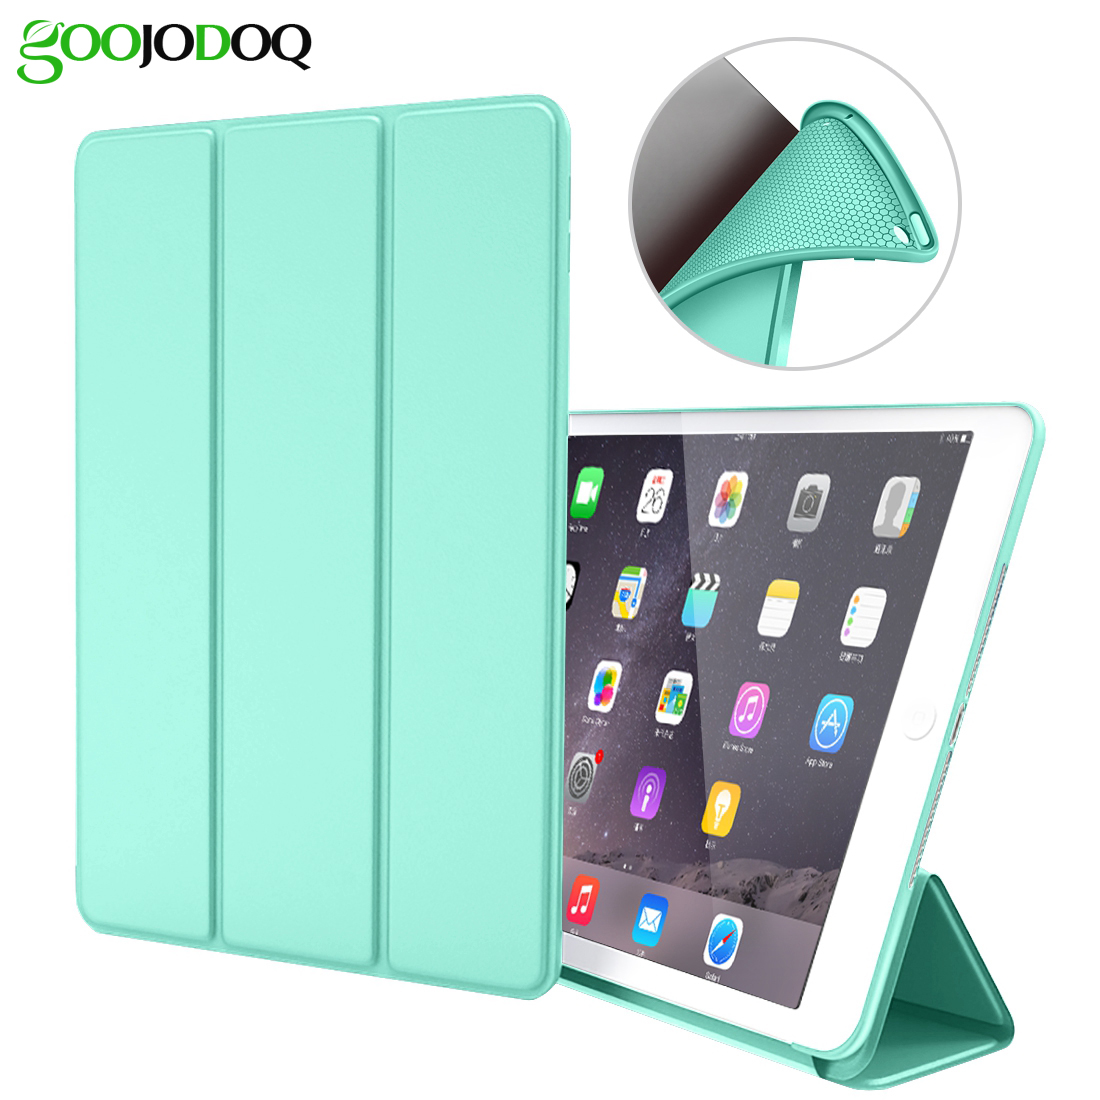 For iPad Pro 9.7 Case Silicone TPU Soft GOOJODOQ Smart Cover for Apple iPad Pro 9.7 inch Case PU Leather 2016 A1673/A1674/A1675 new luxury ultra slim silk tpu smart case for ipad pro 9 7 soft silicone case pu leather cover stand for ipad air 3 ipad 7 a71